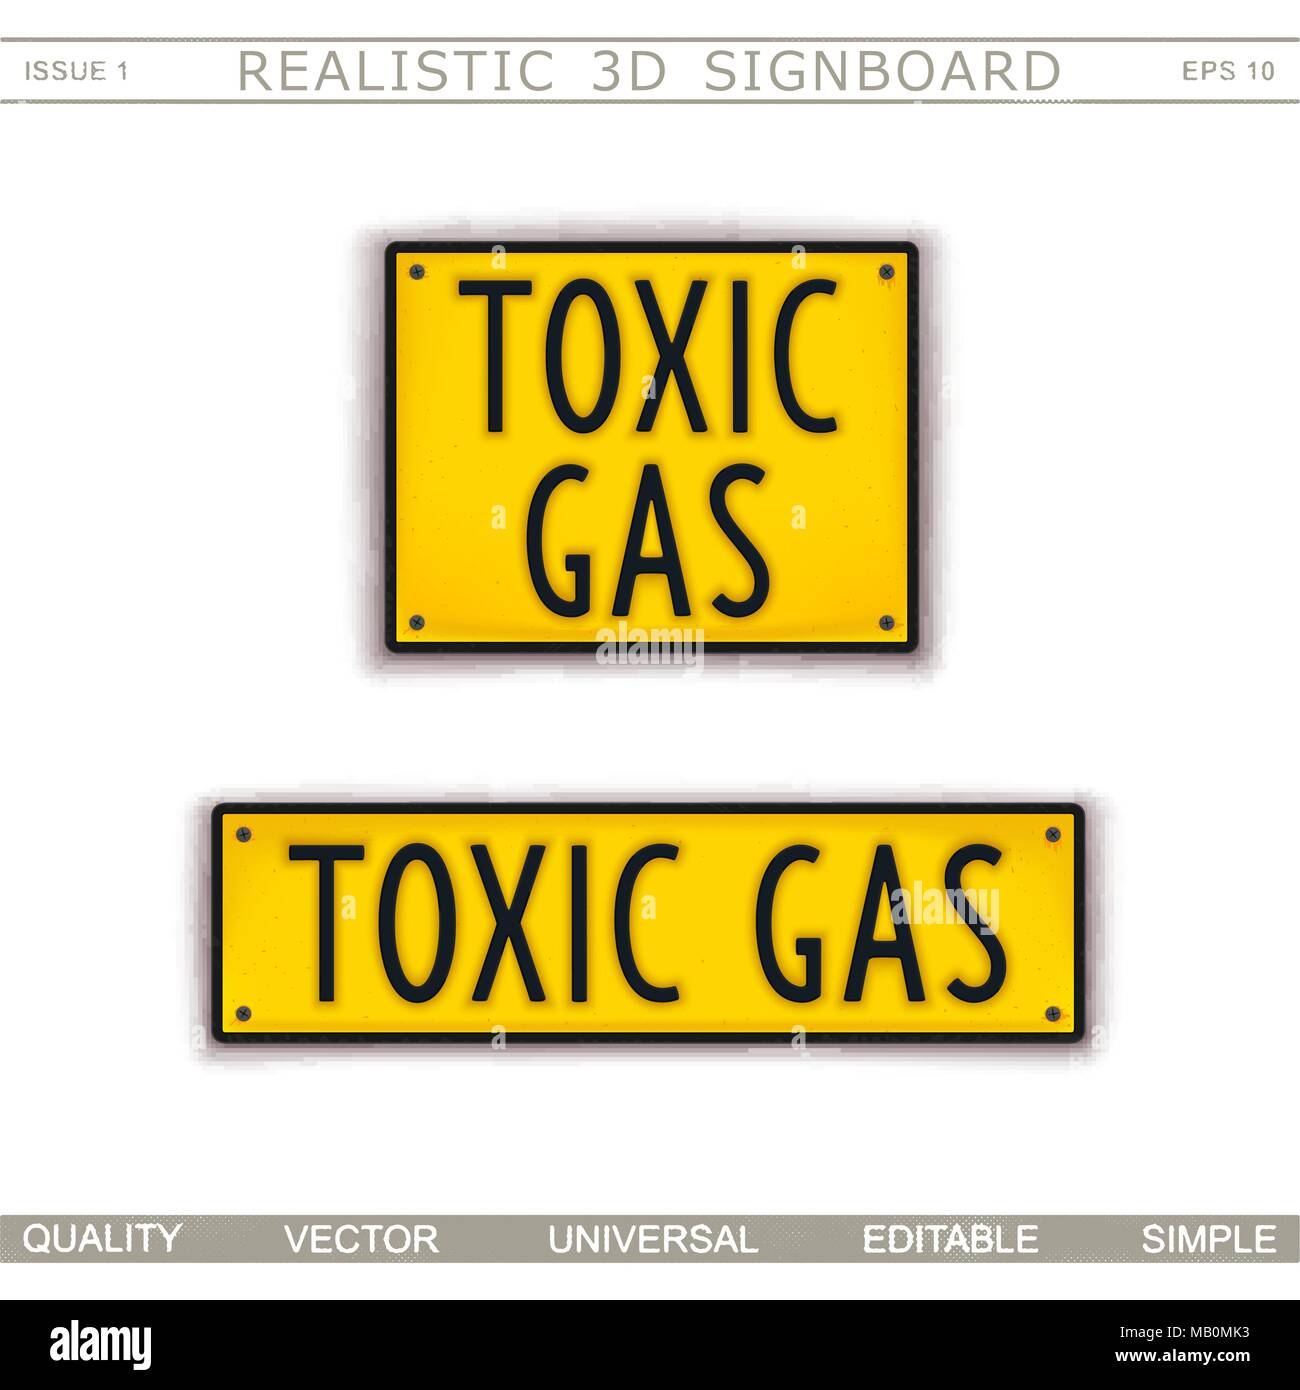 Toxic Gas. Warning signs. 3D signboard. Top view. Vector design elements - Stock Image